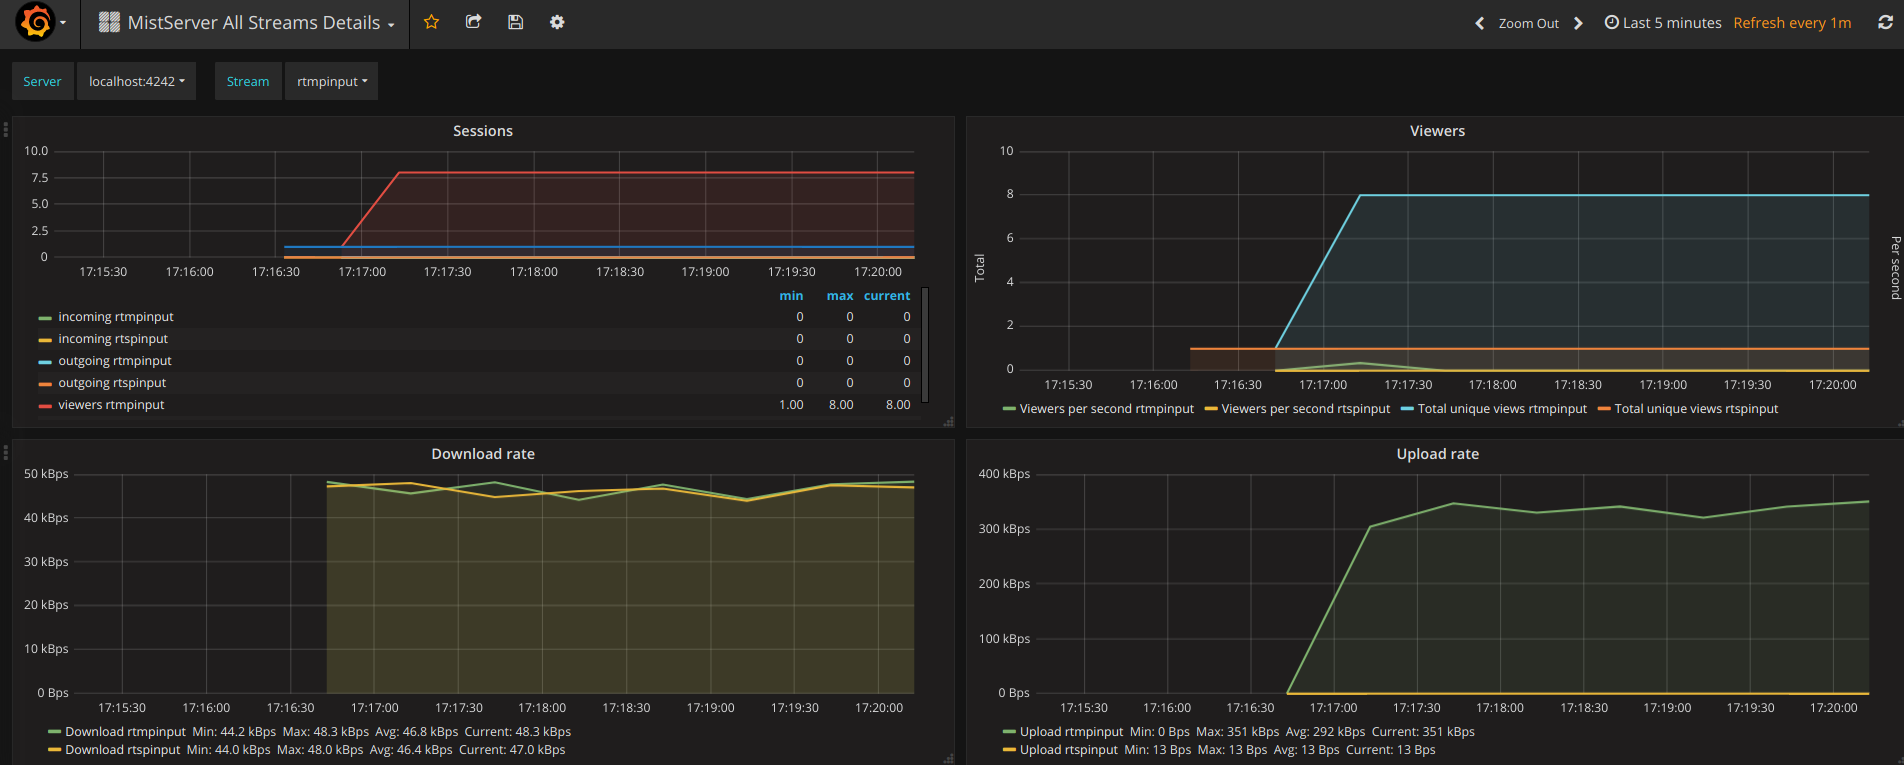 Image of the MistServer All Streams Details Dashboard in grafana